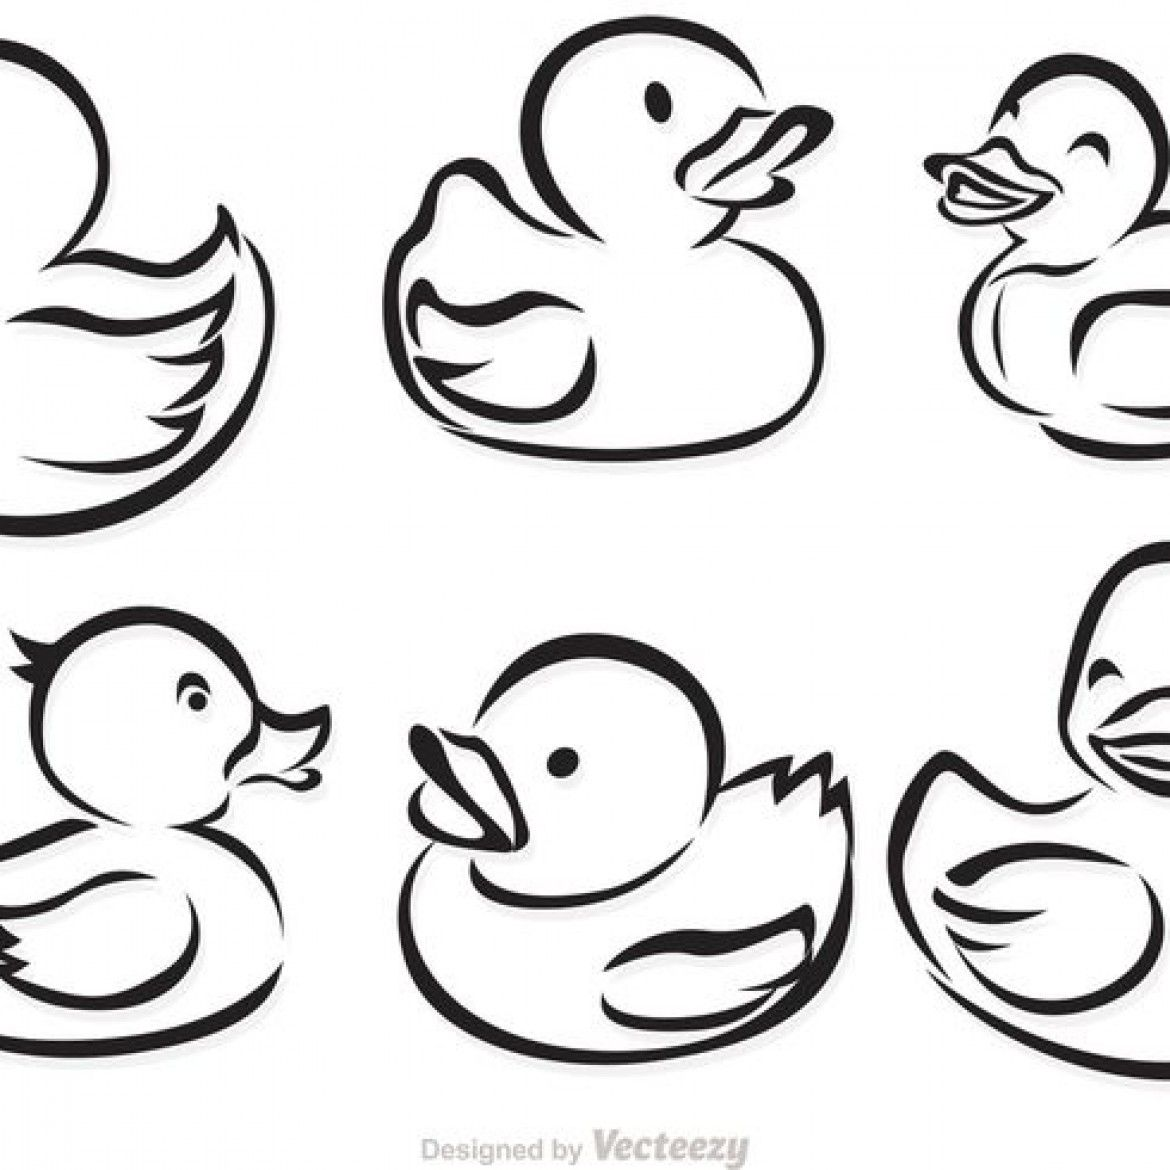 14++ Rubber ducky clipart black and white ideas in 2021